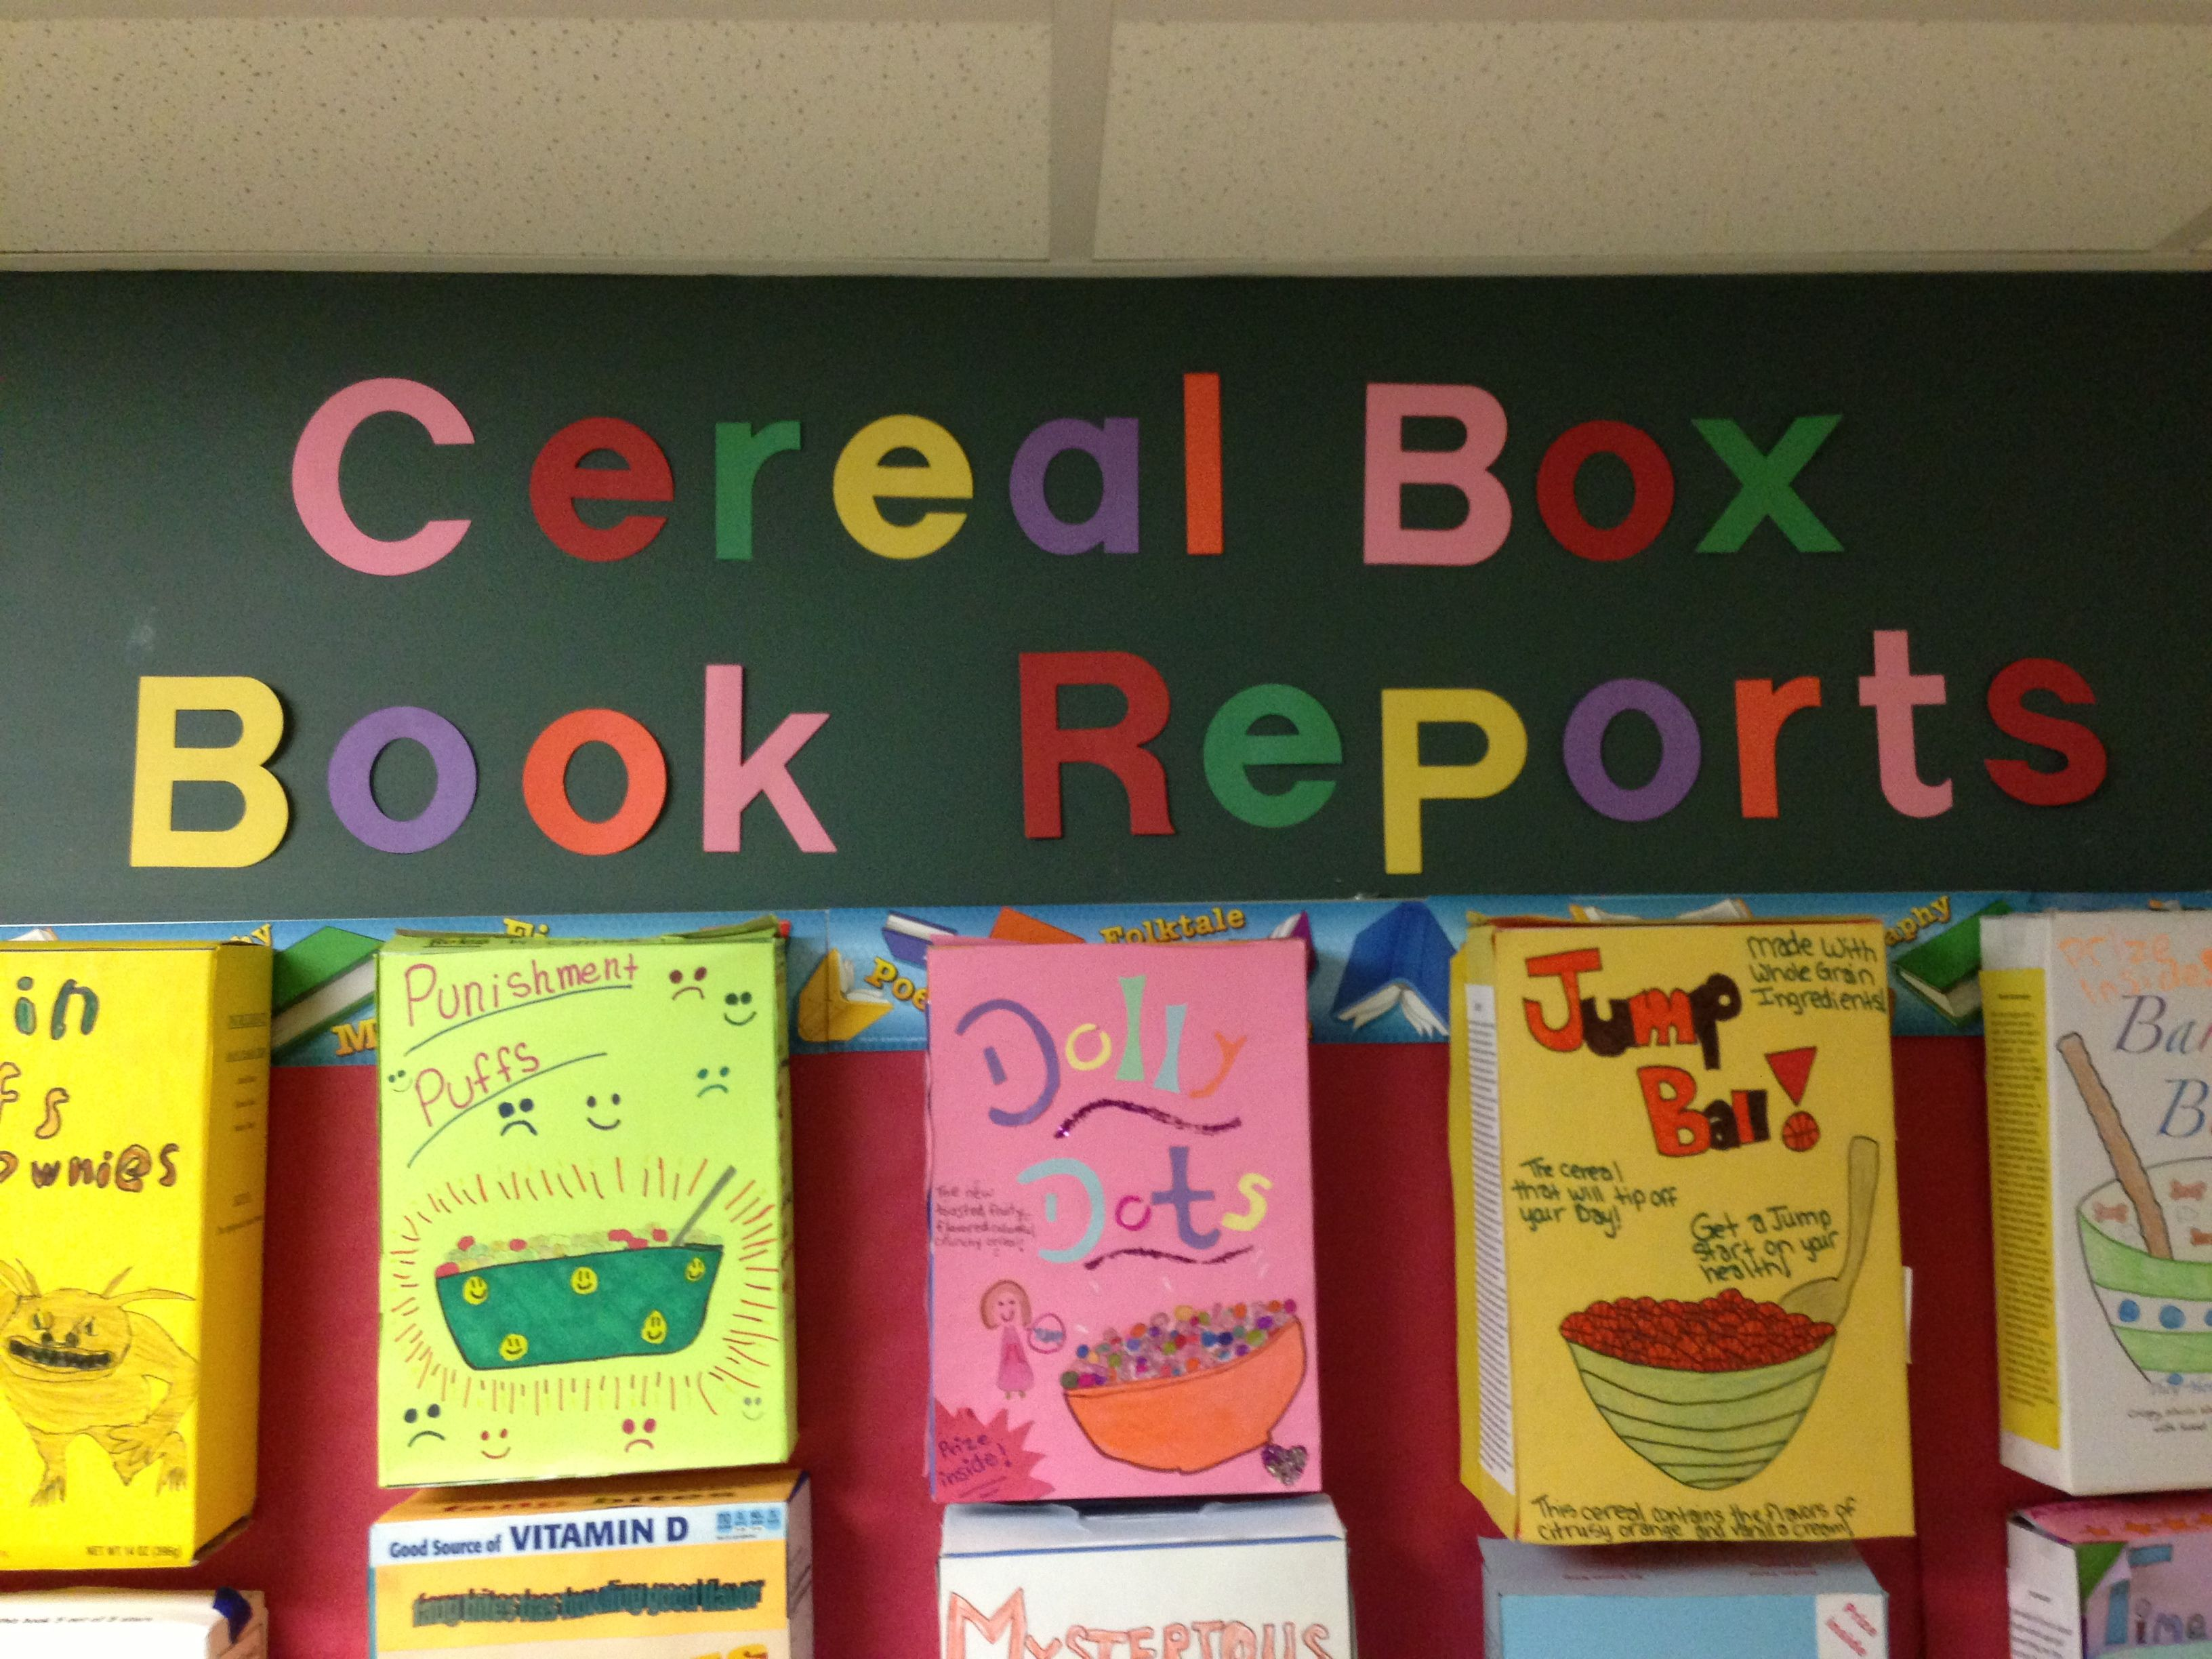 cereal box book reports steven noyes 4th grade